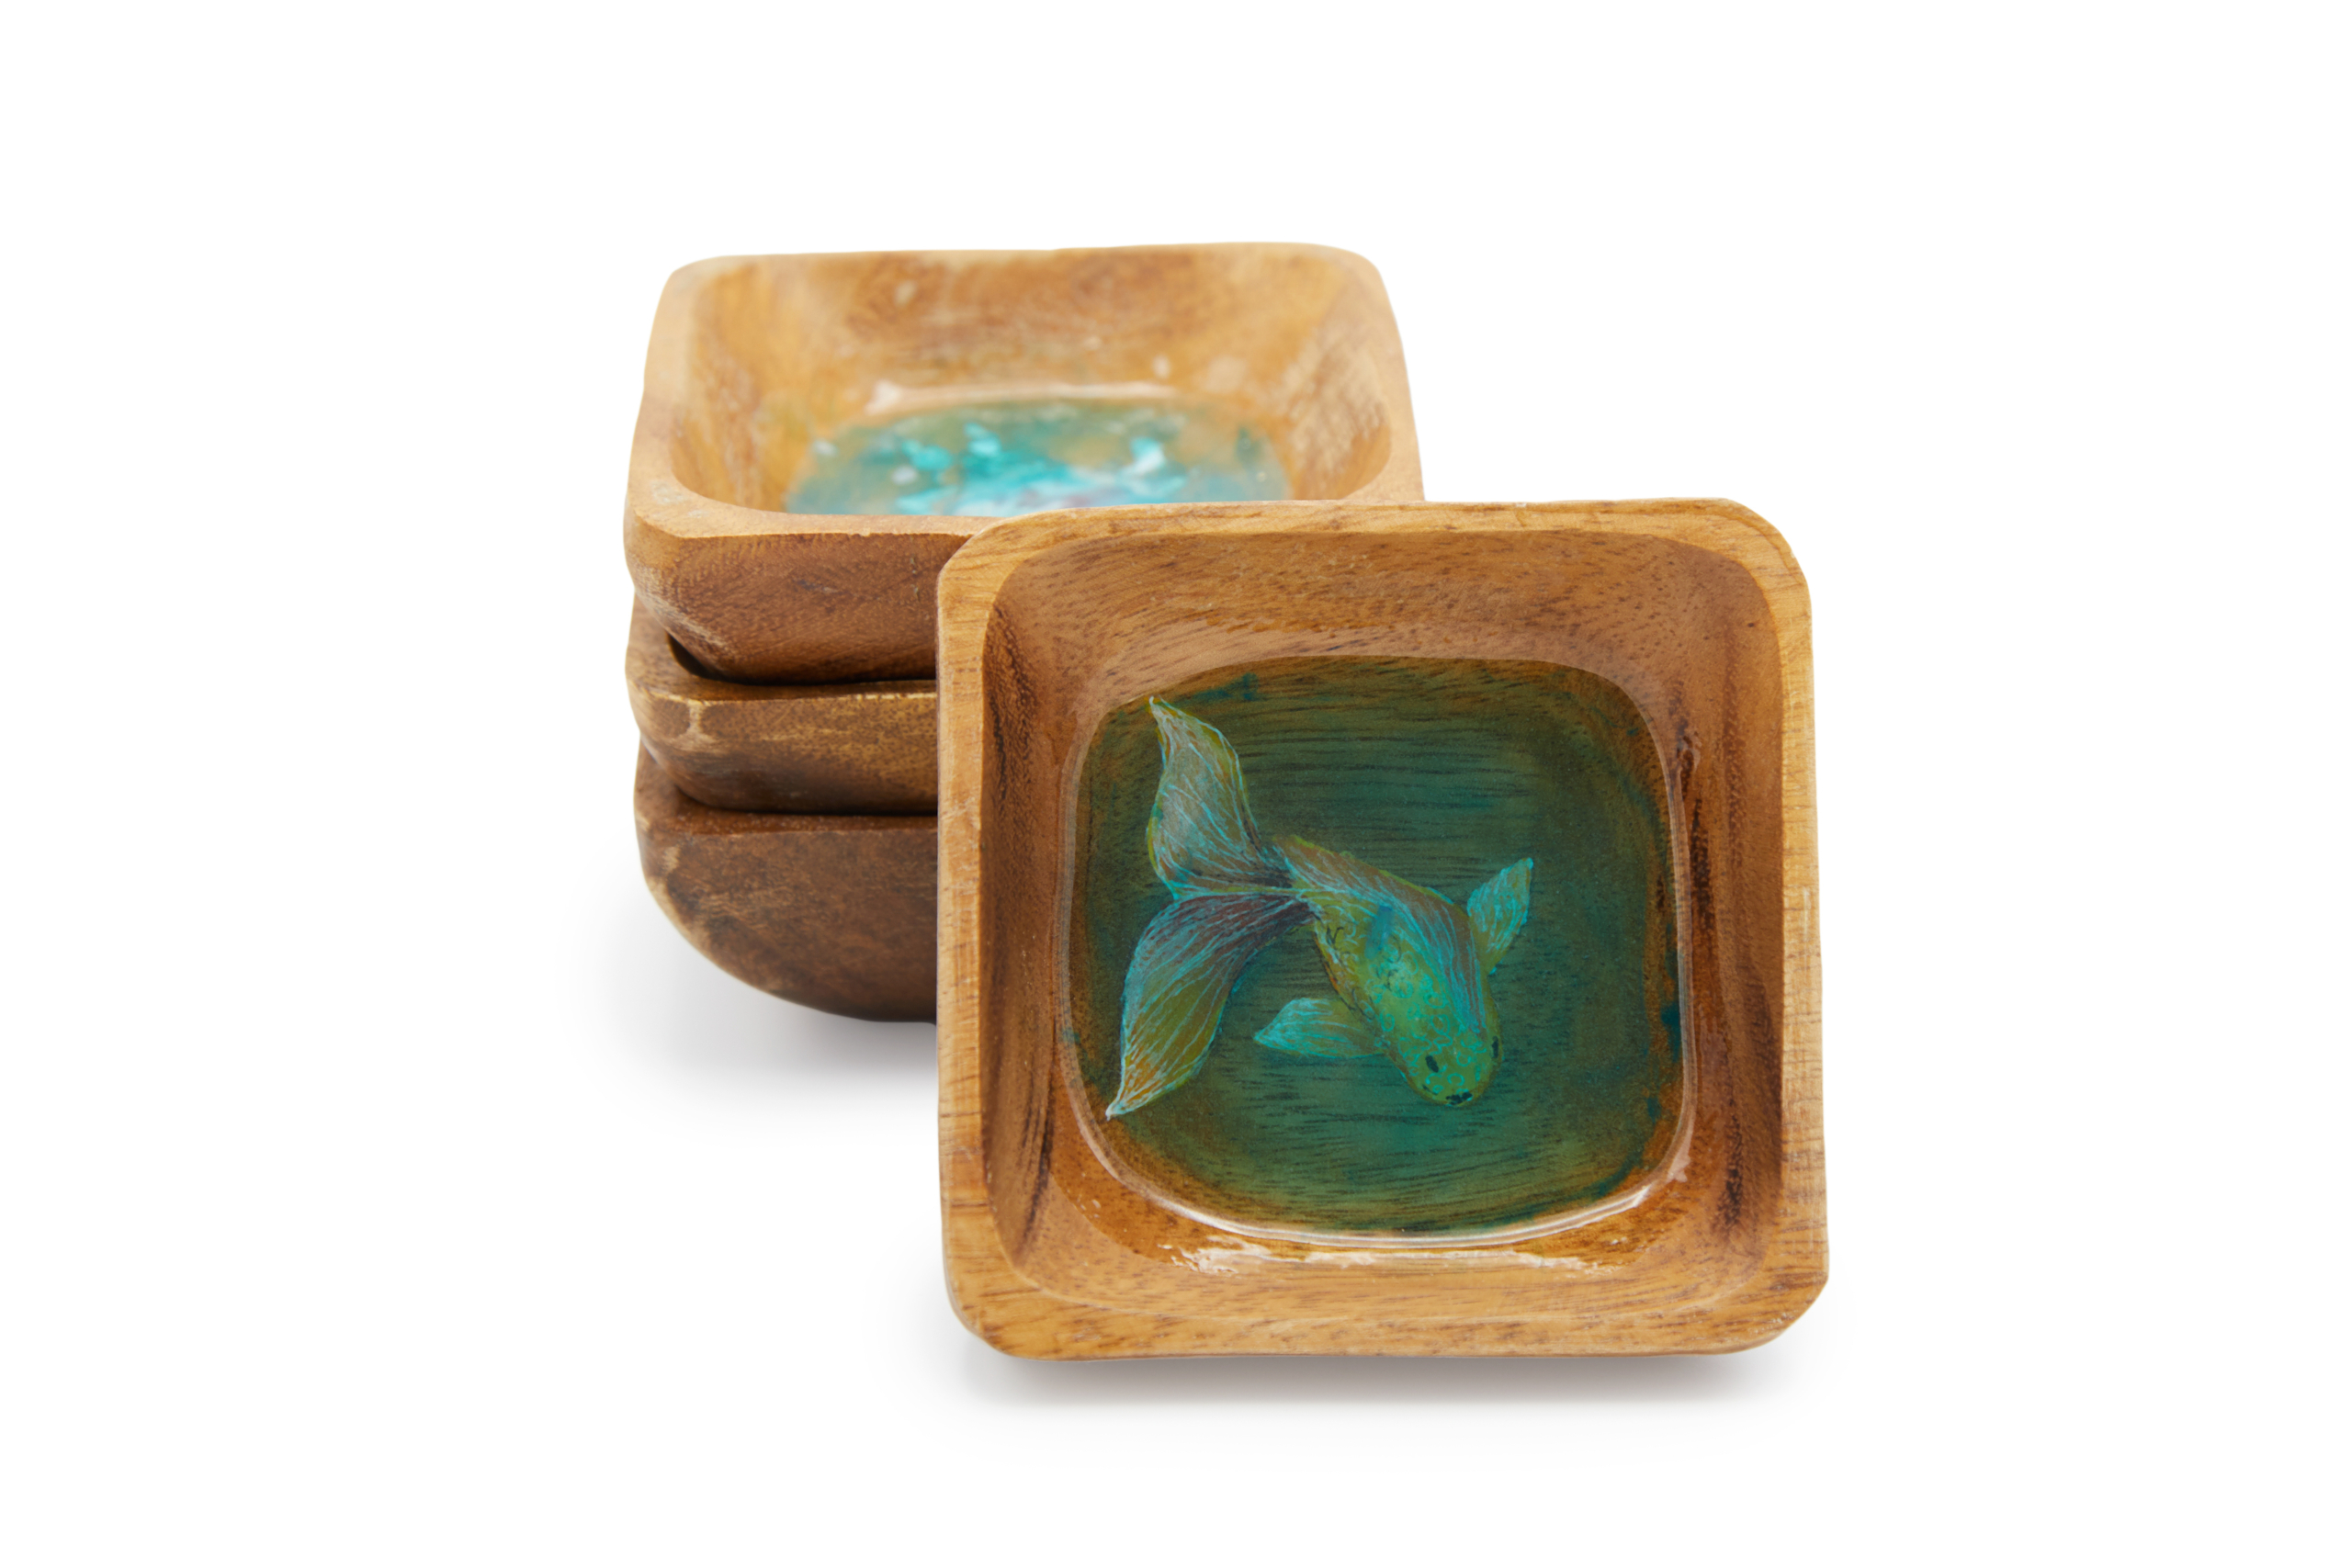 wooden bowls with gemstone middle for amazon product photography